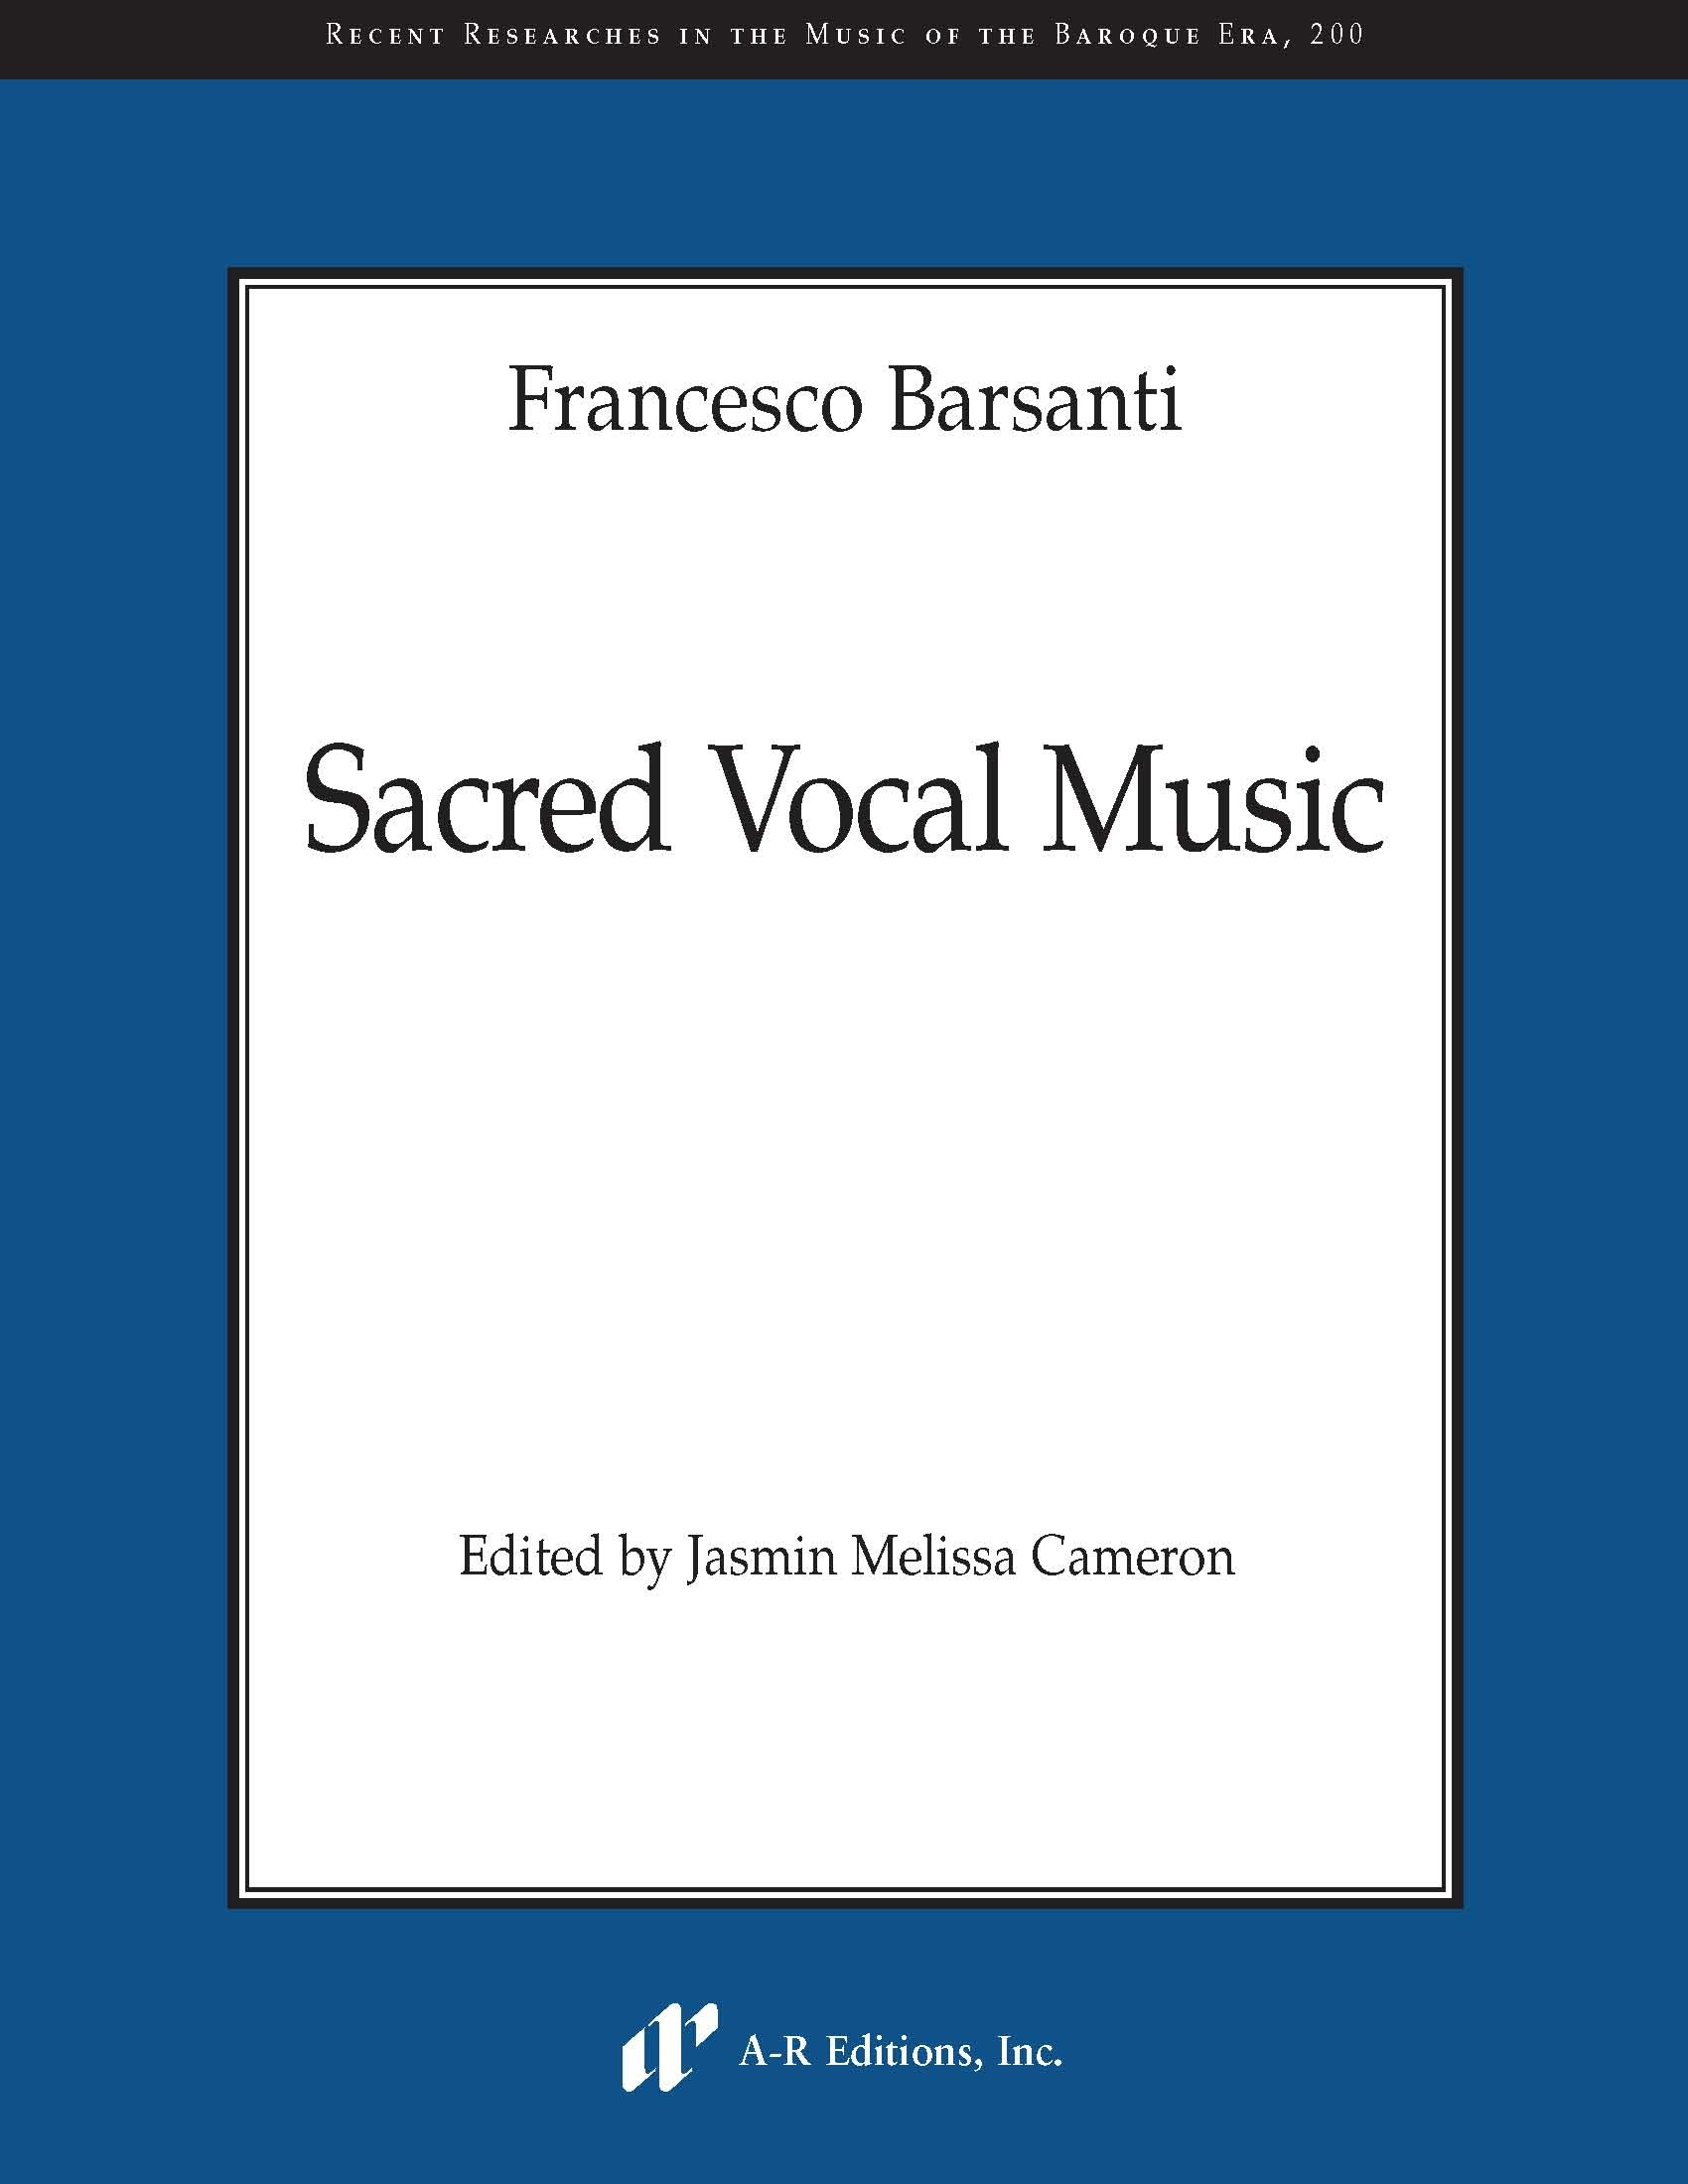 Barsanti: Sacred Vocal Music